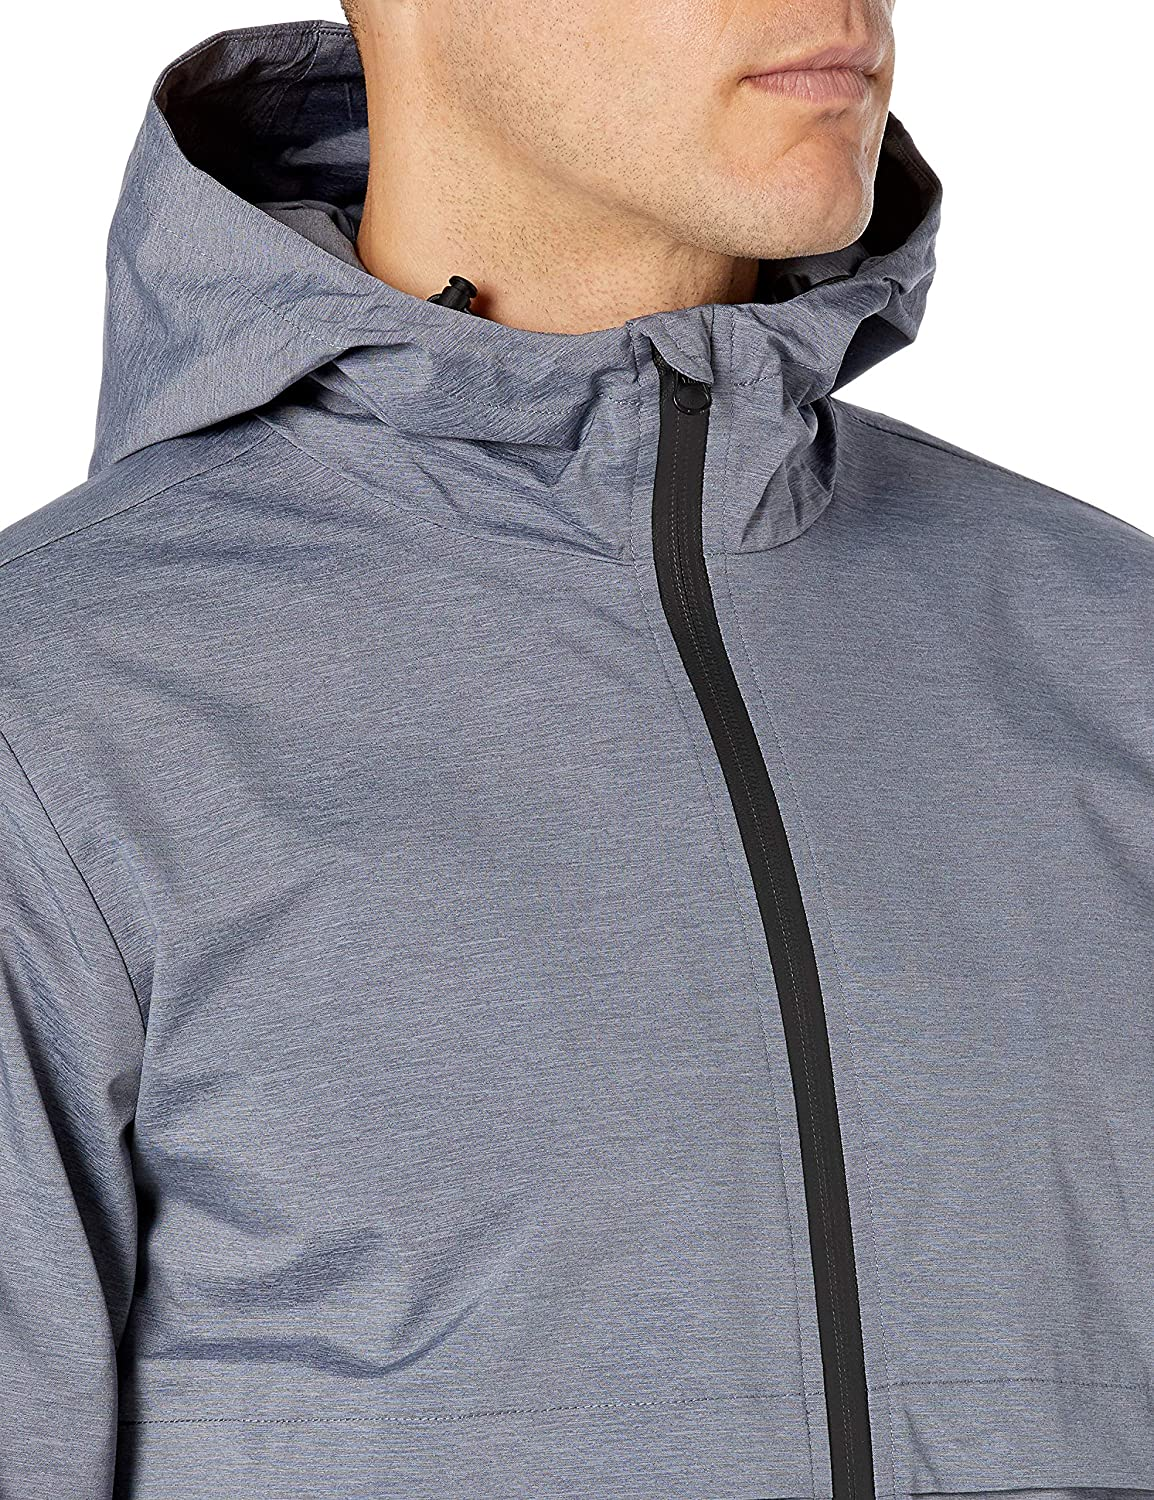 Brand Peak Velocity Mens Windbreaker Full-Zip Jacket